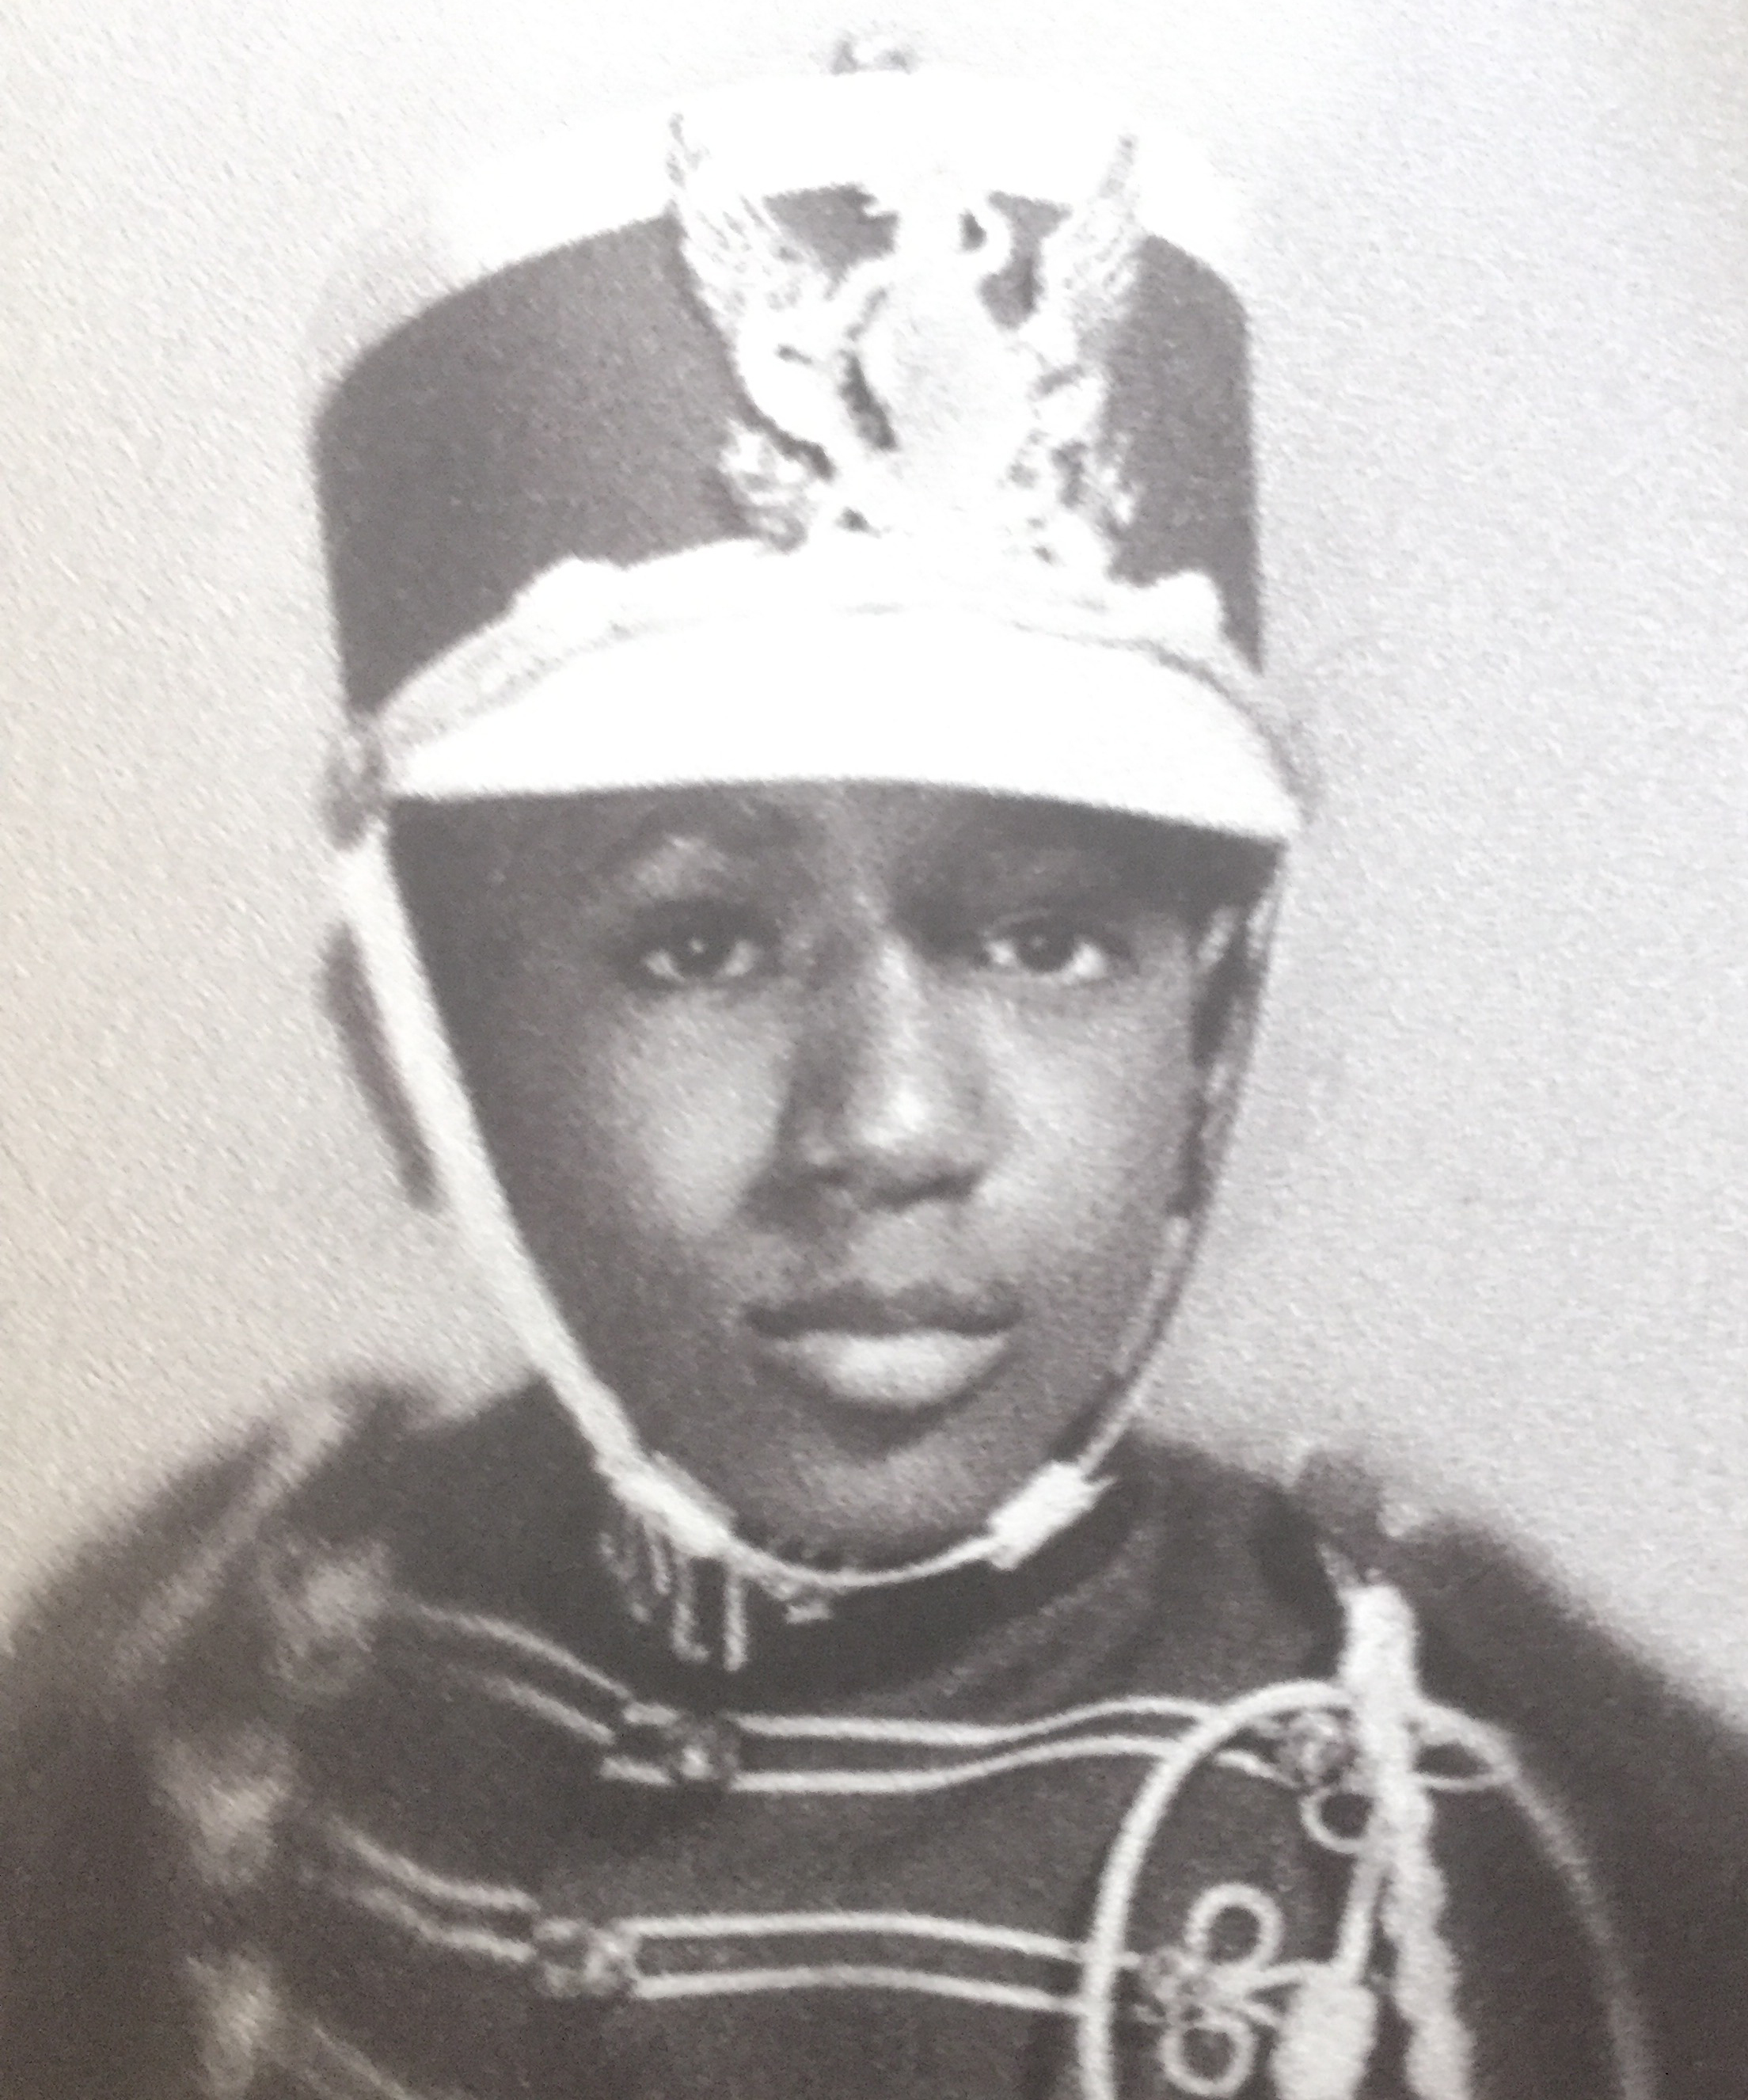 A young Dick Knight in a marching band costume.